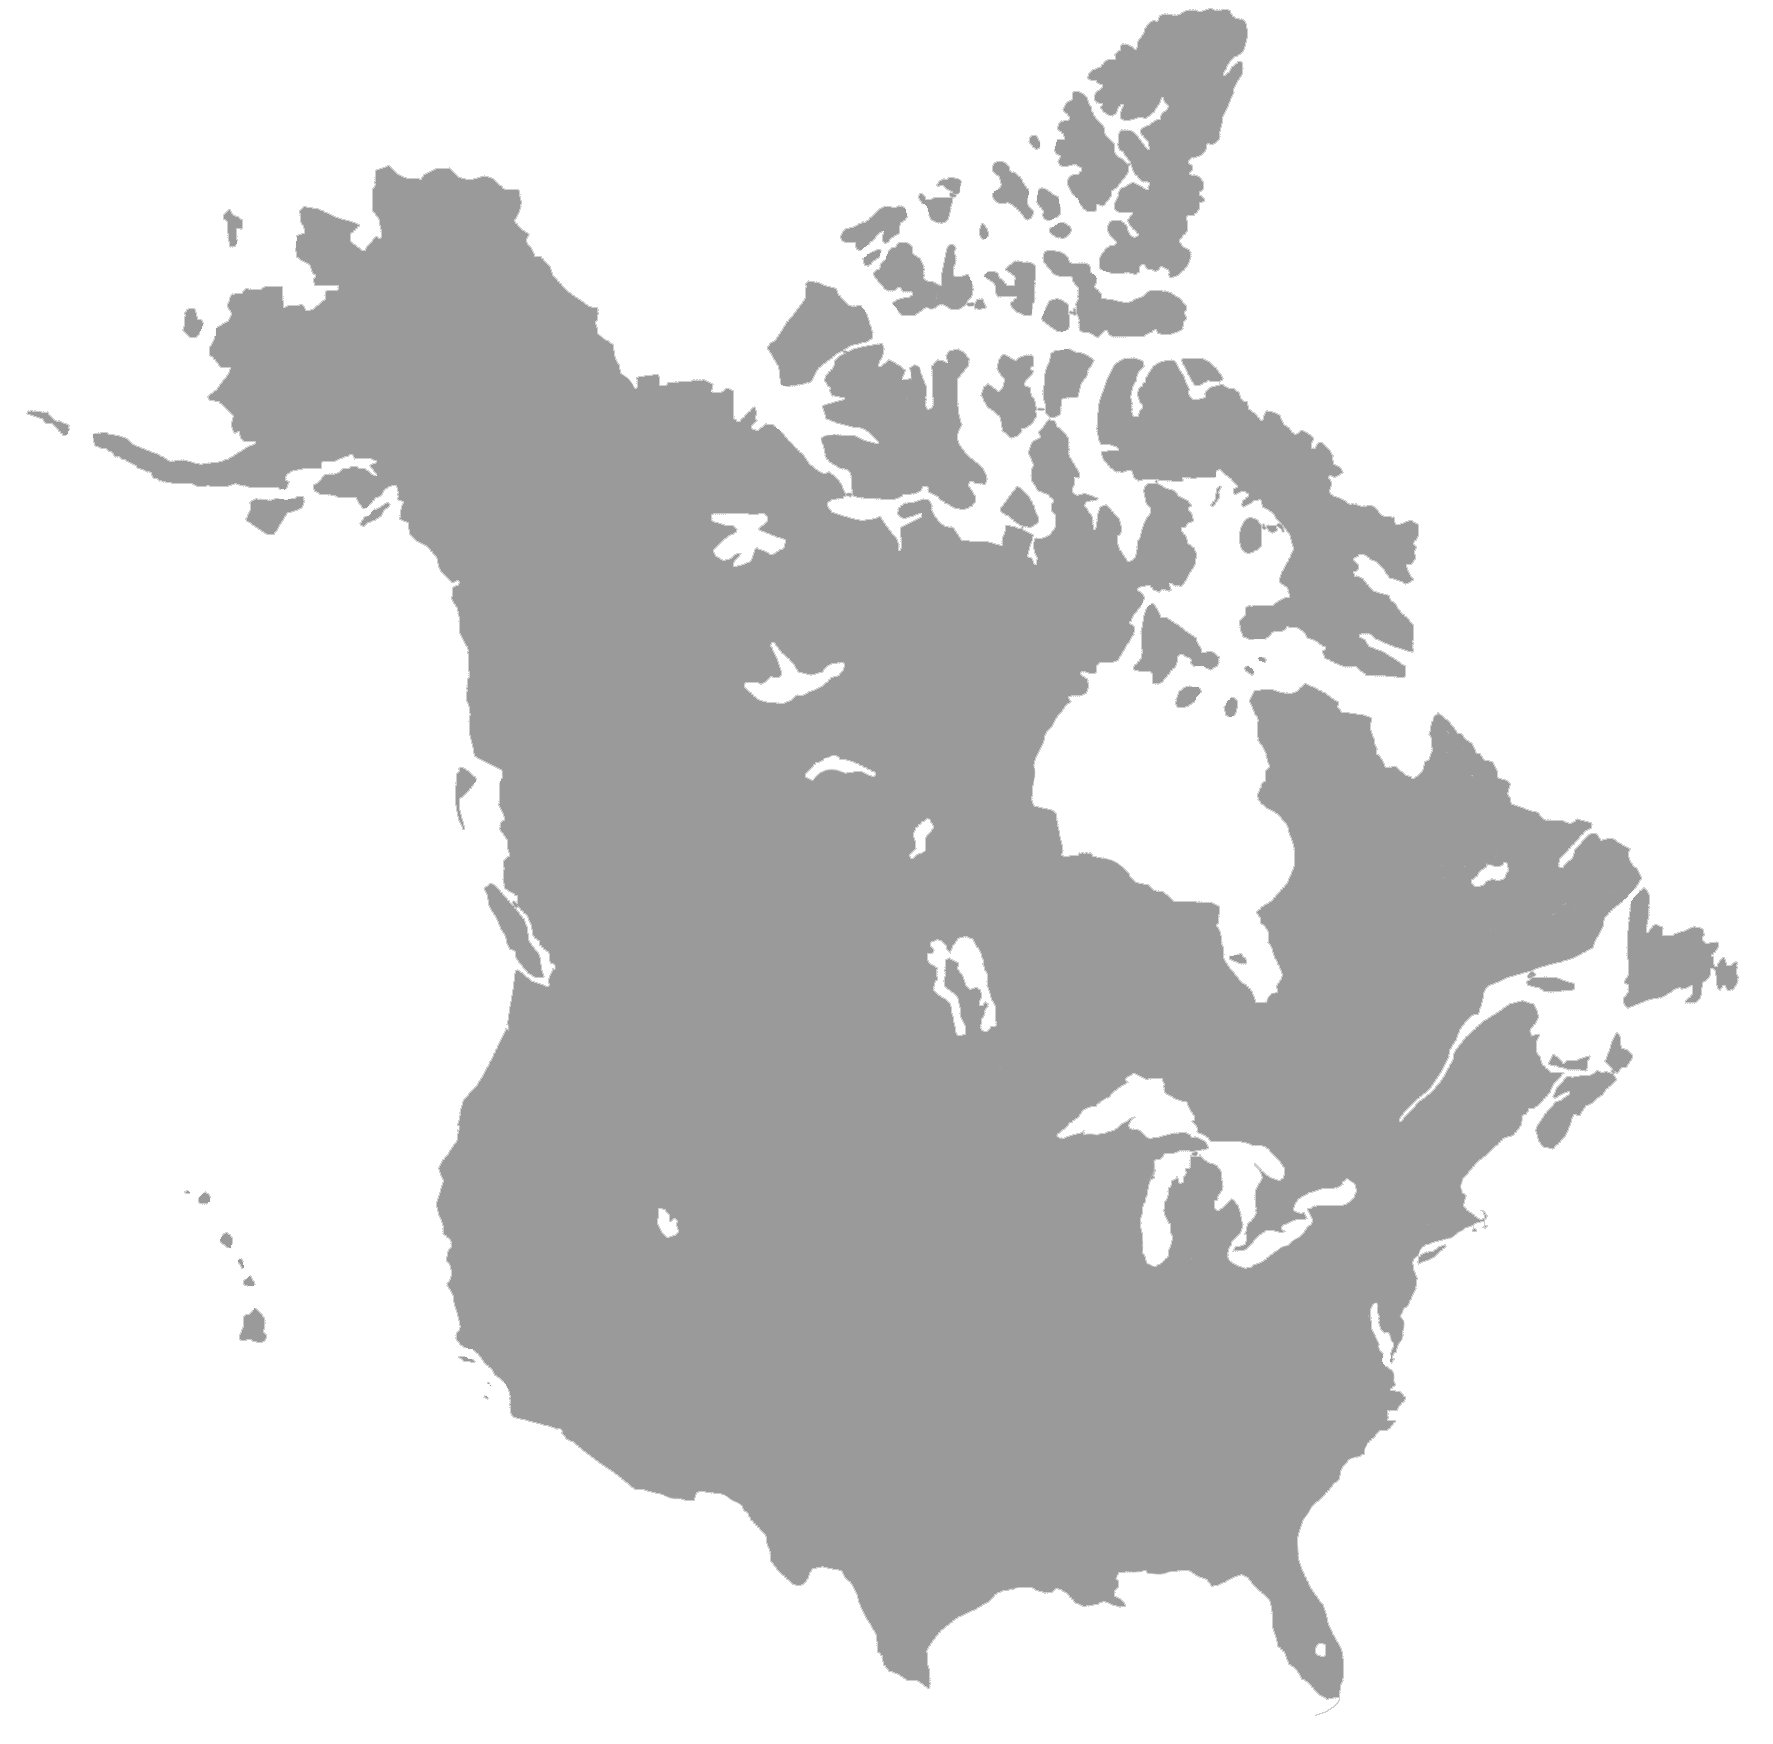 United States and Canada